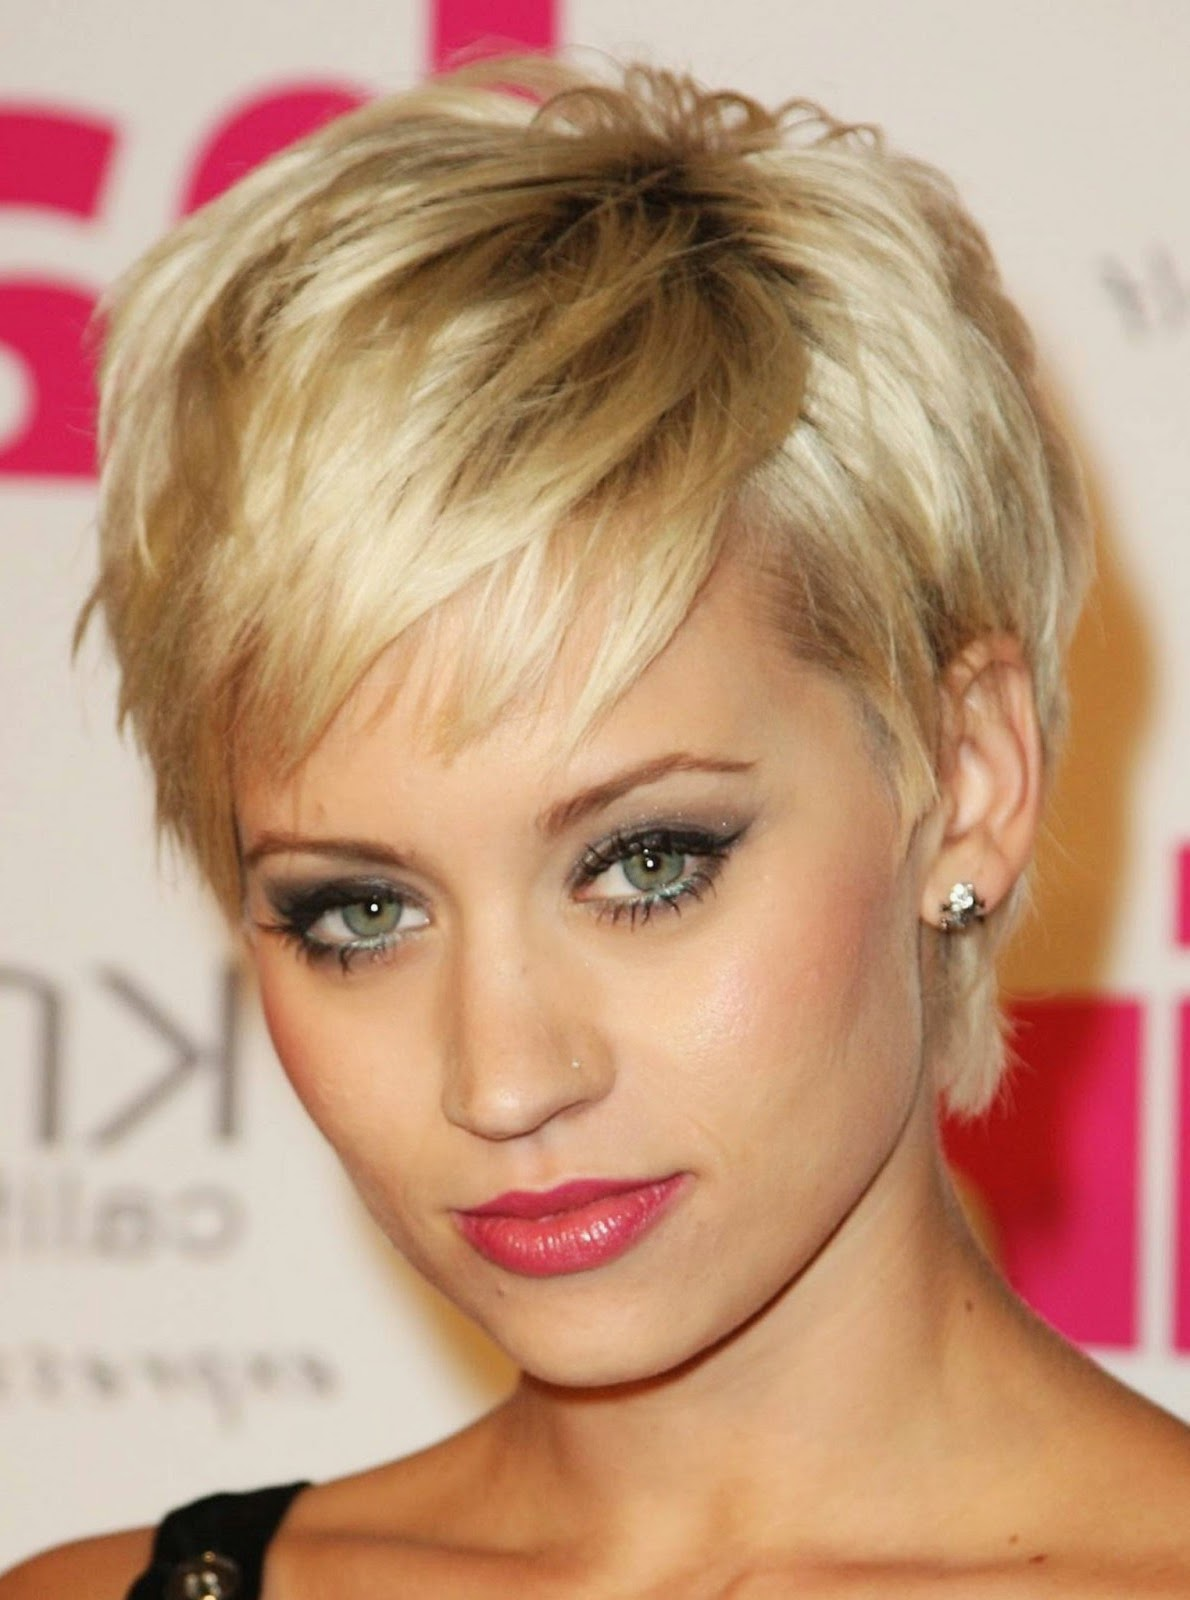 popular-hairstyles-2015-for-women-good-haircuts.jpg